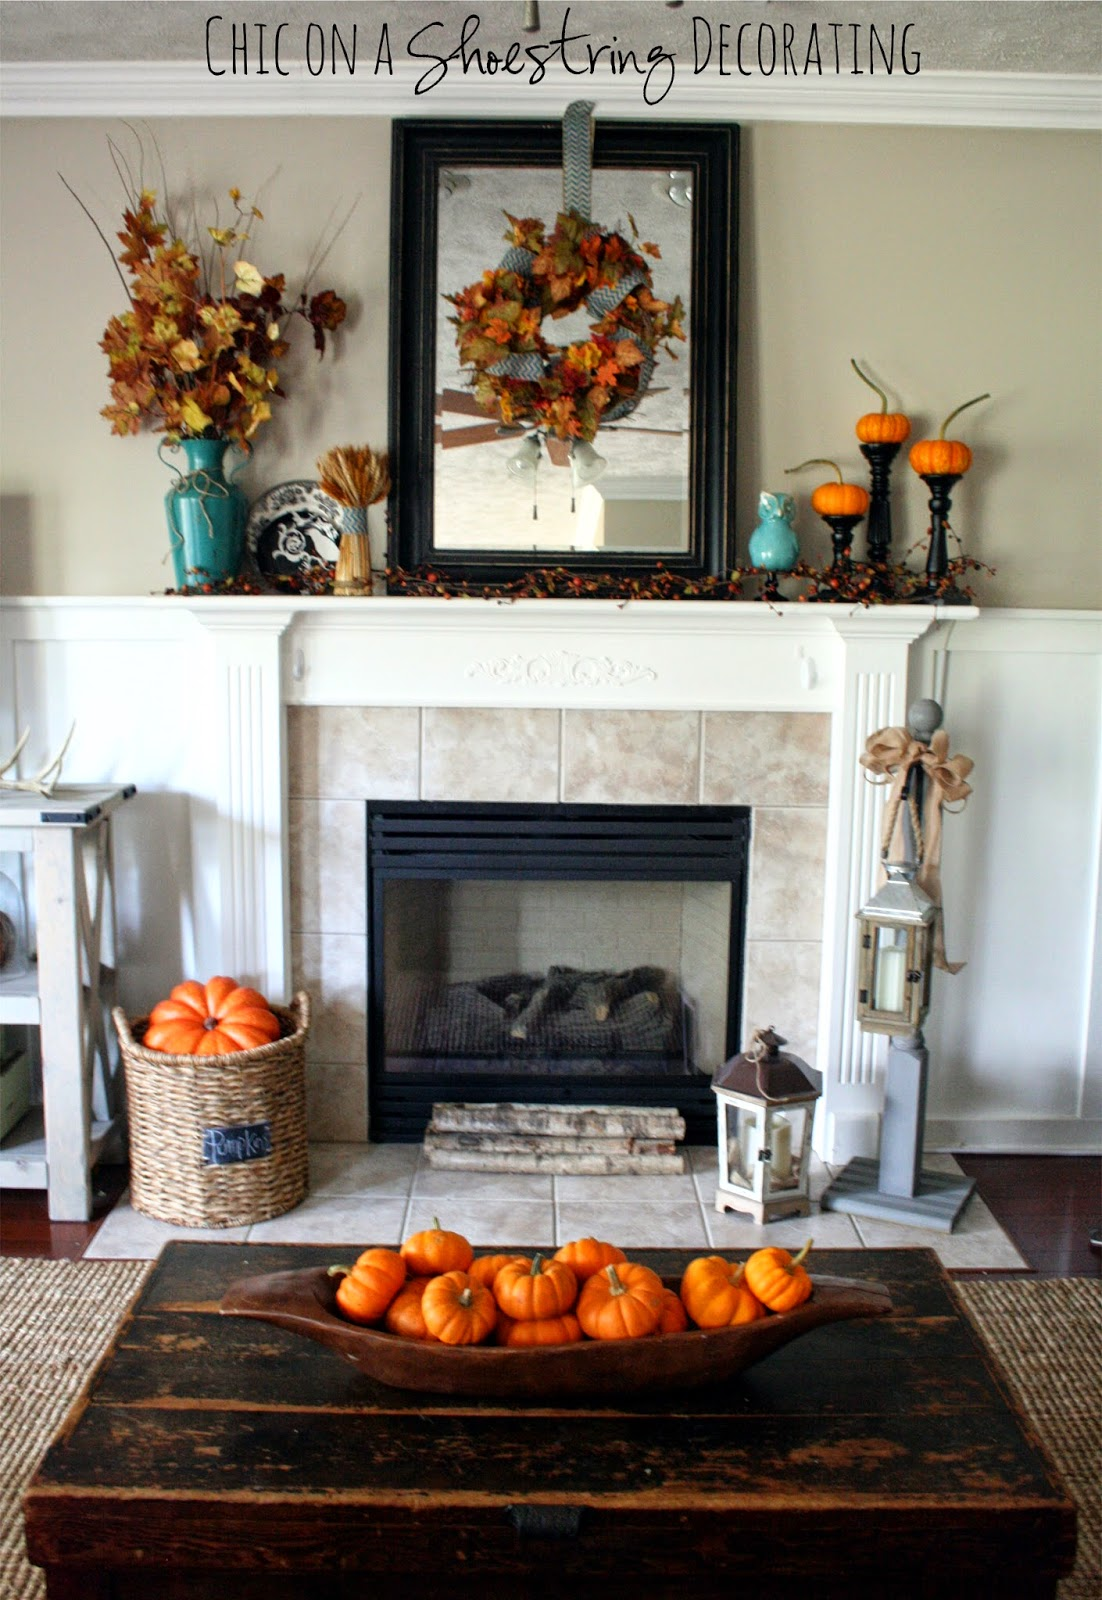 chic on a shoestring decorating black orange fall decor